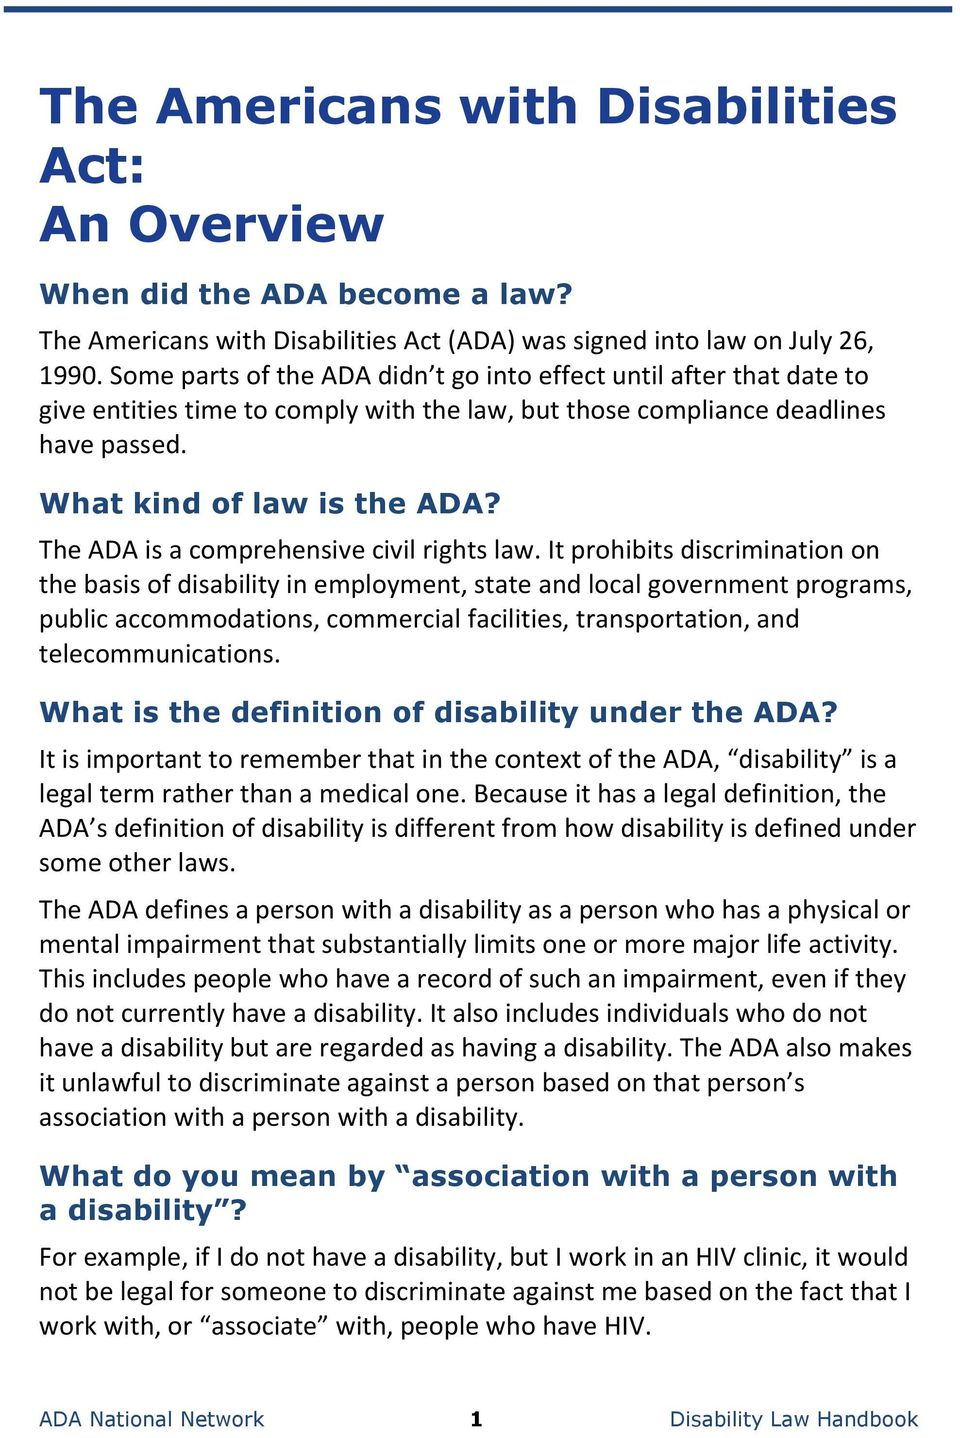 the ada national network disability law handbook - pdf